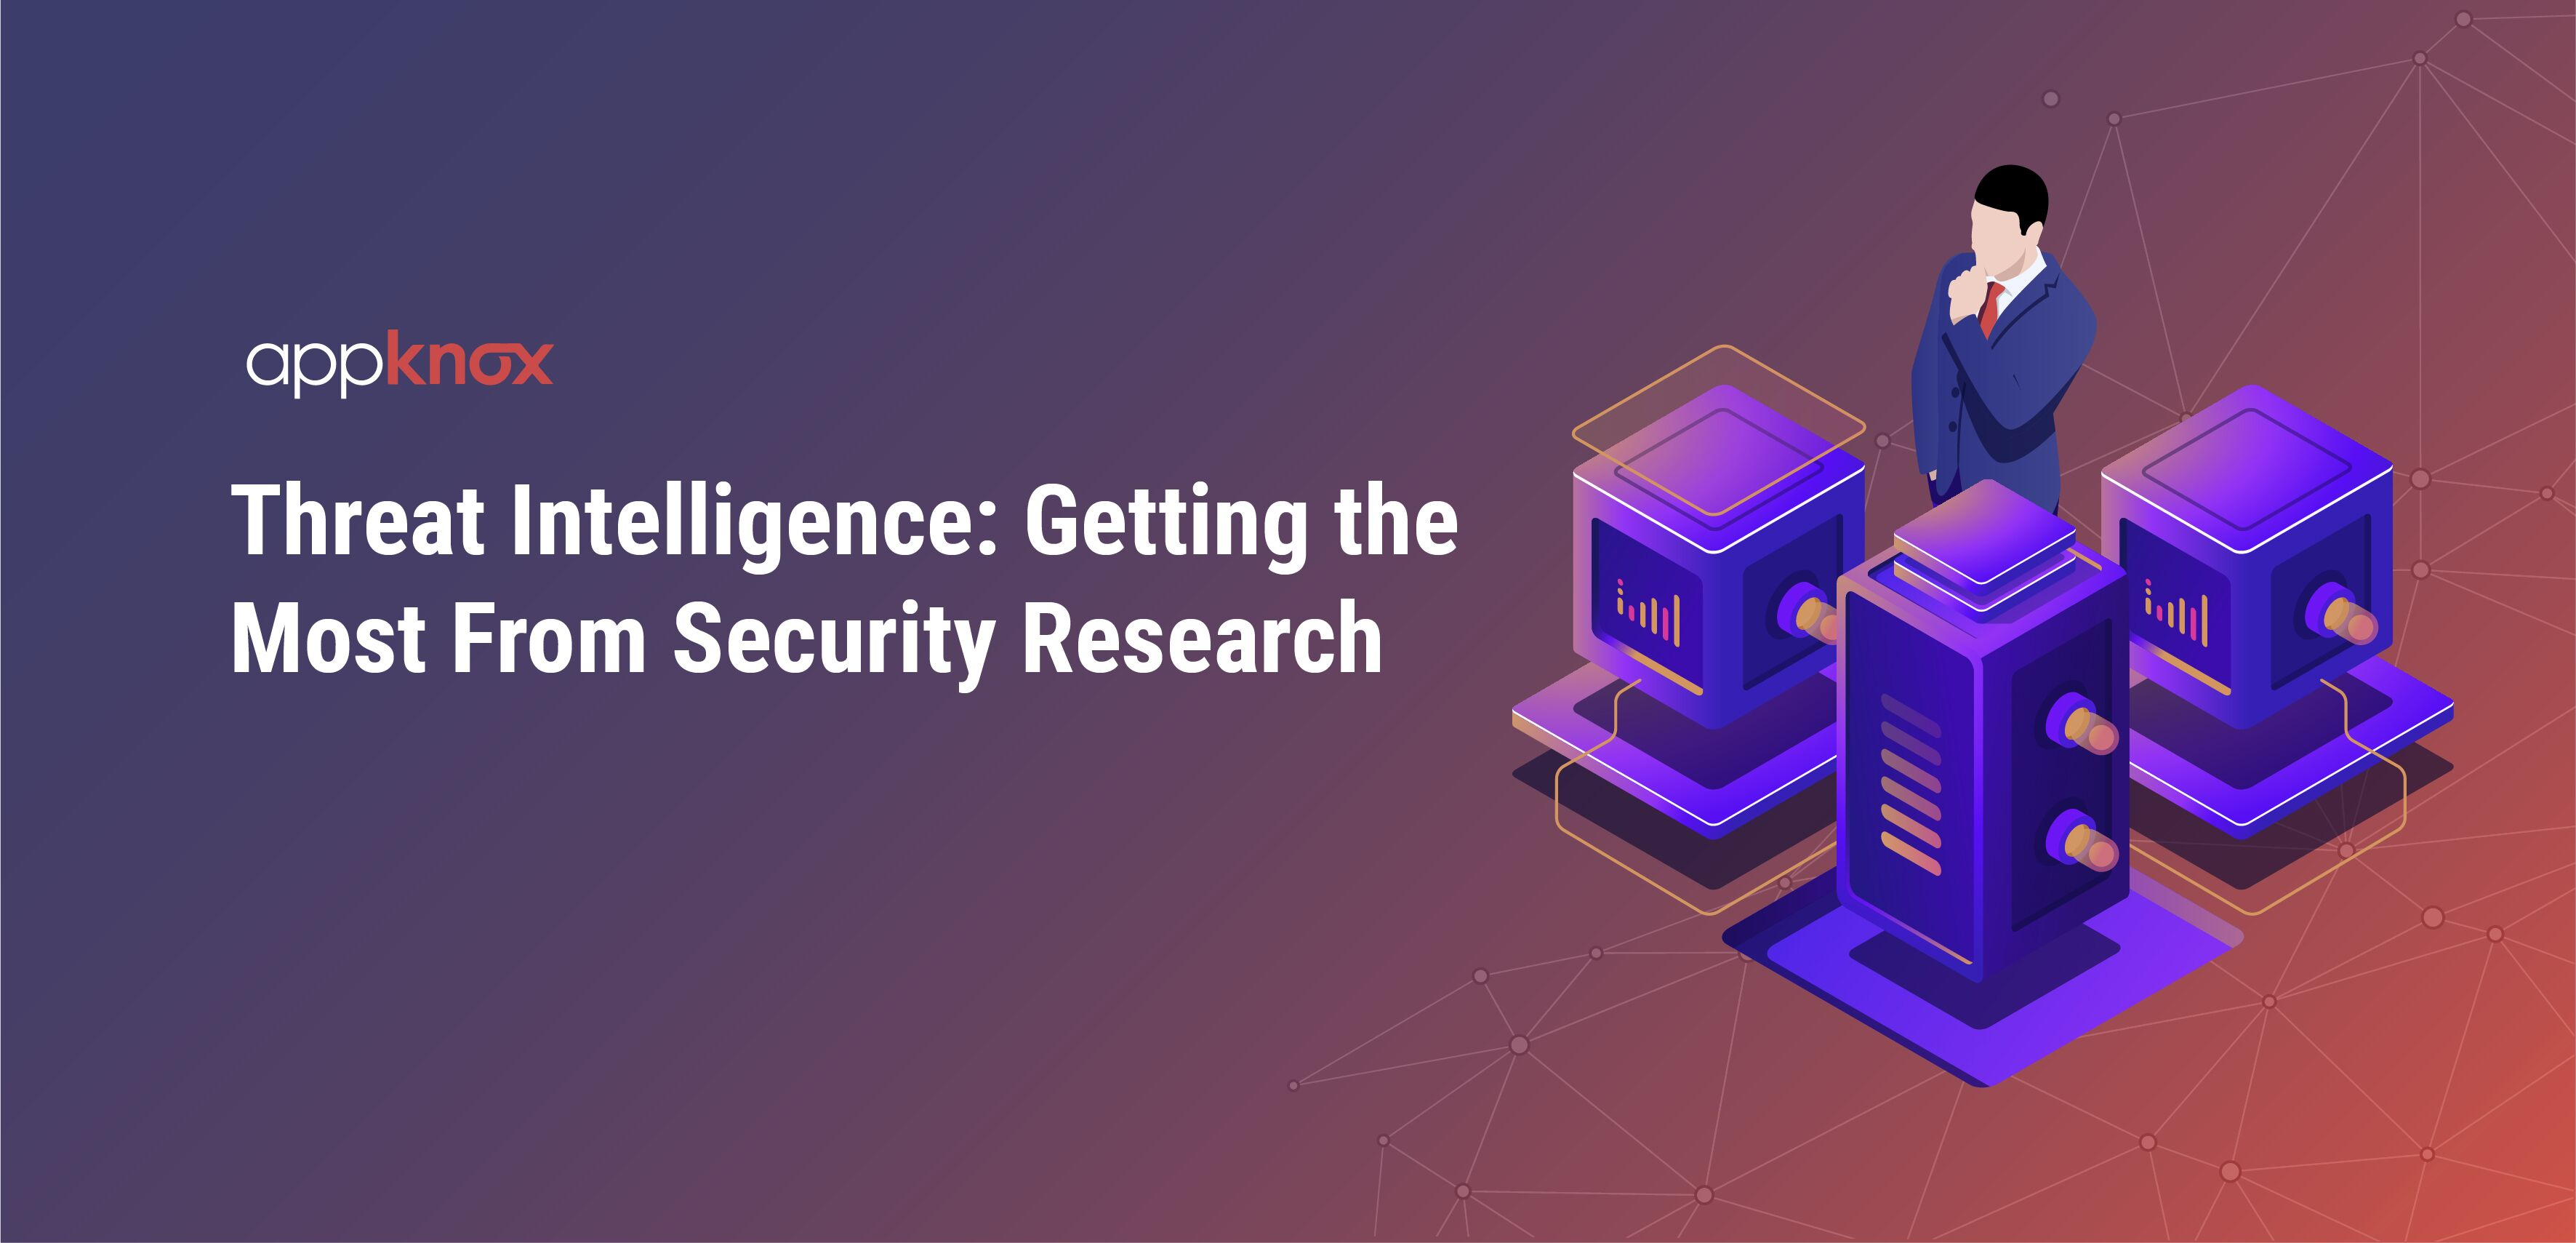 Threat Intelligence: Getting the Most From Security Research